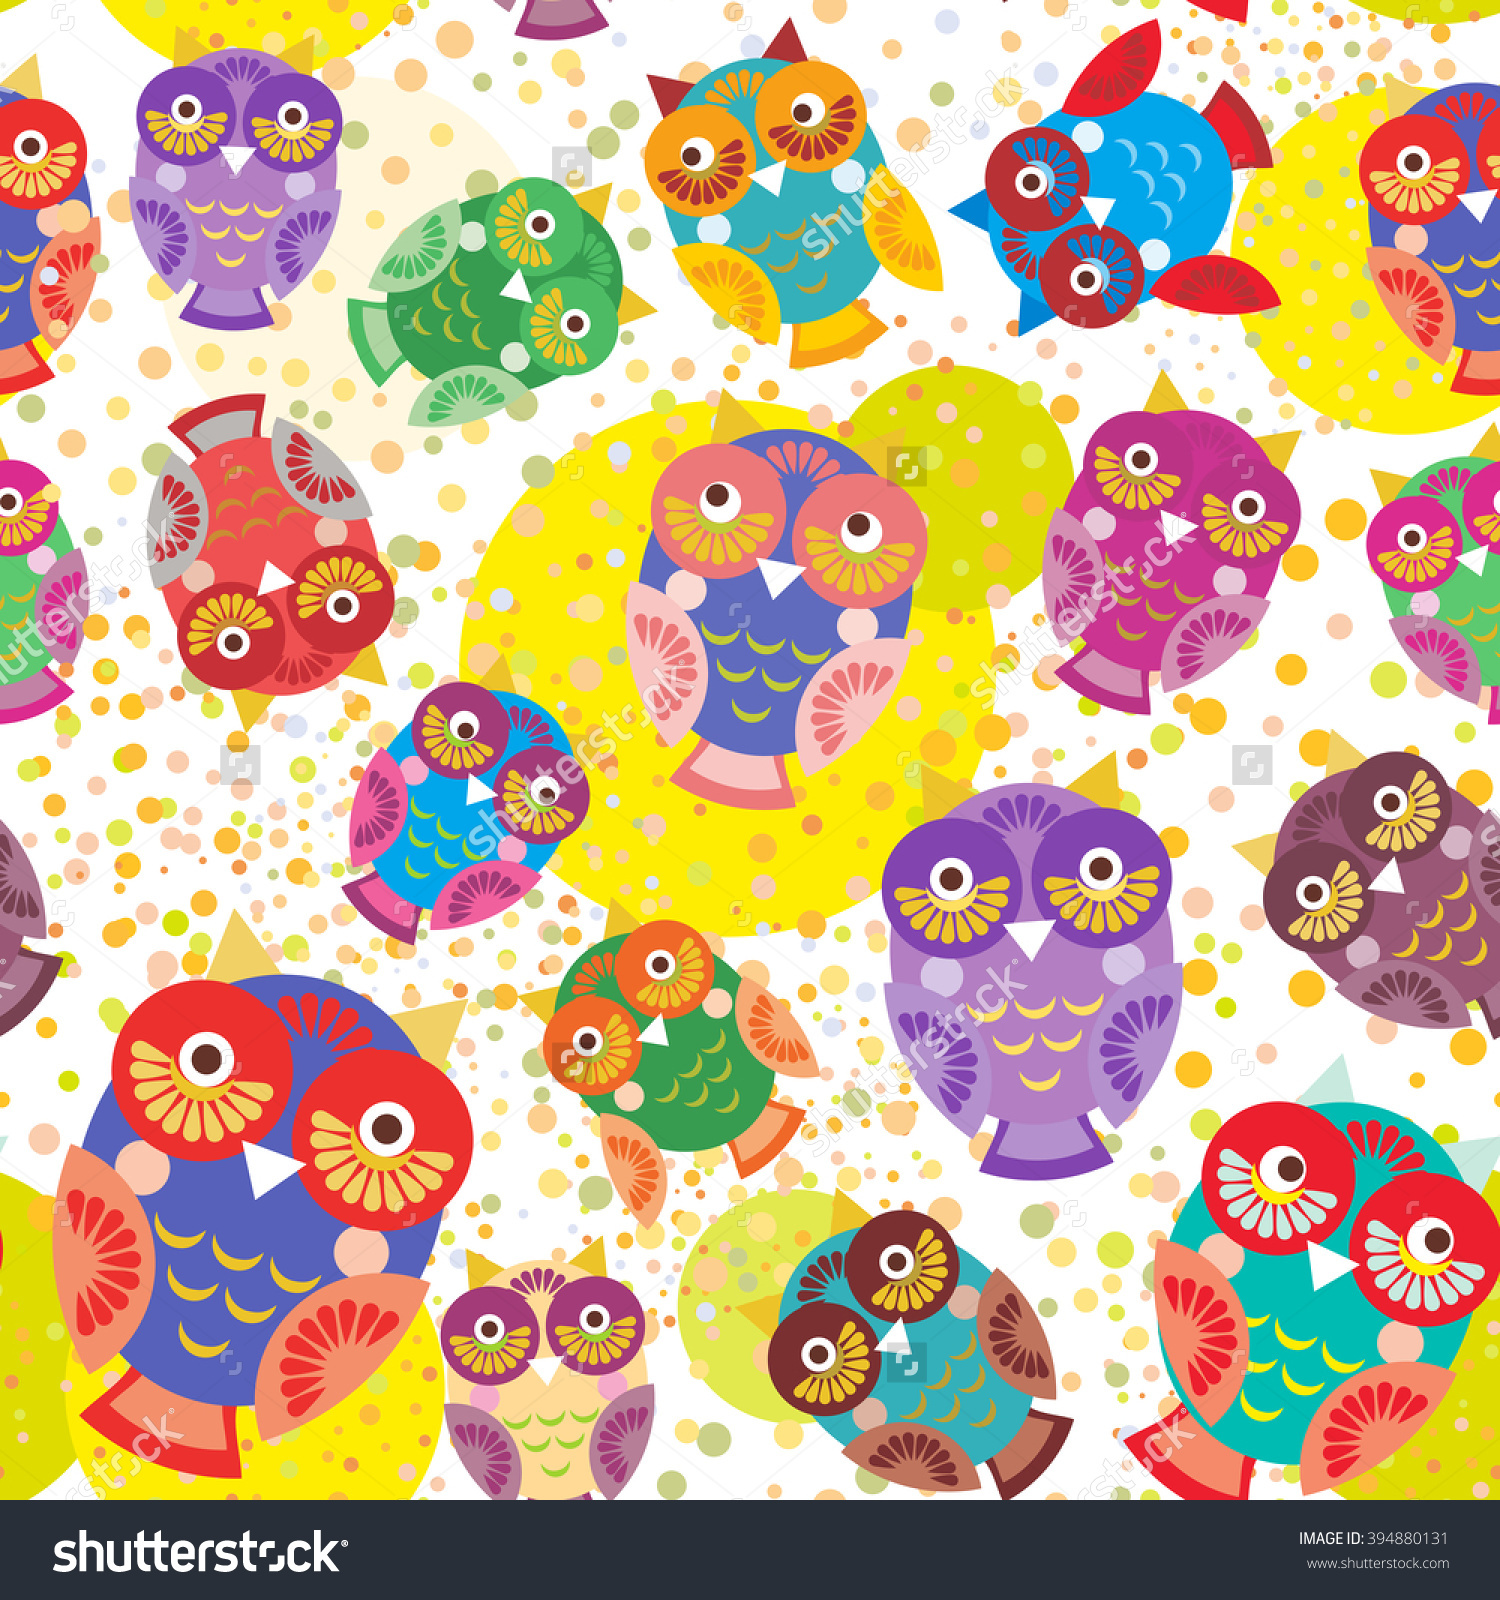 Seamless Pattern Bright Colorful Cute Owls On White Background.